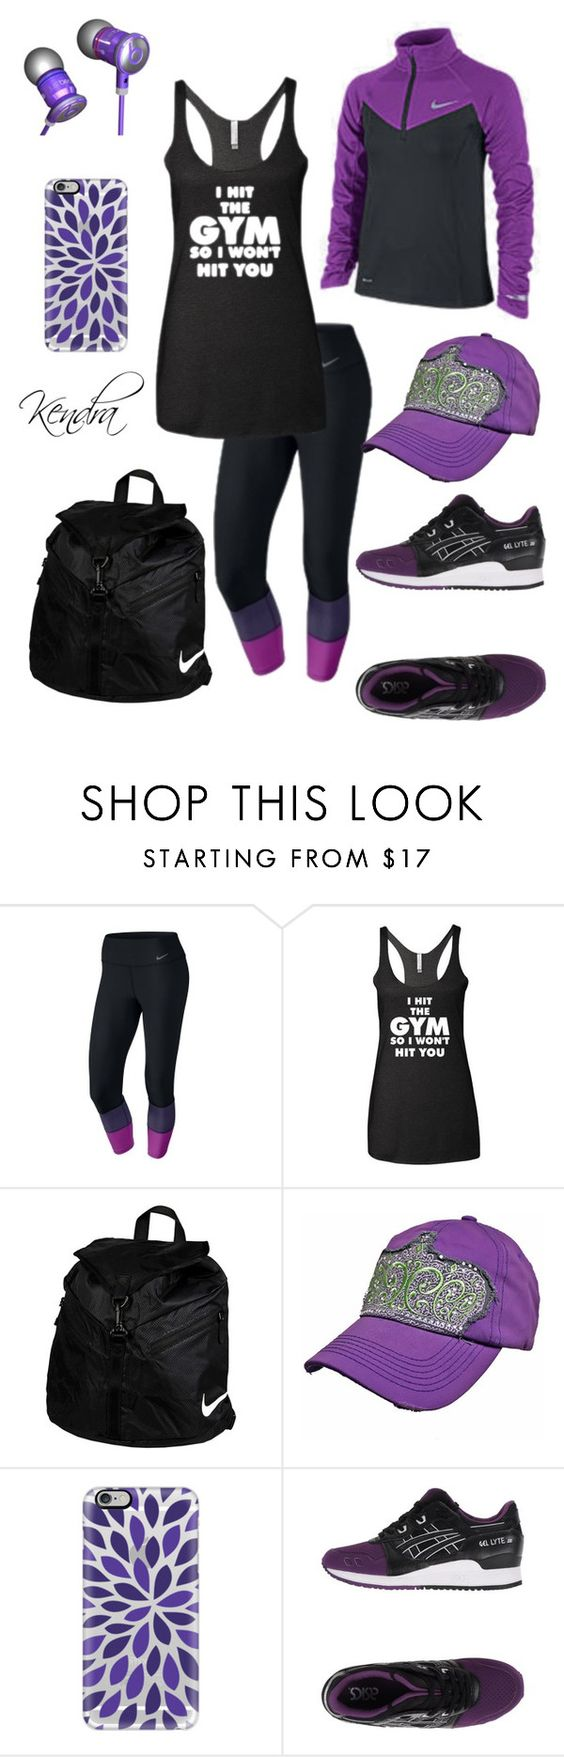 """I'm A Lover Not A Fighter"" by kmariestyles ❤ liked on Polyvore featuring NIKE, Beats by Dr. Dre, Casetify and Asics Tiger"